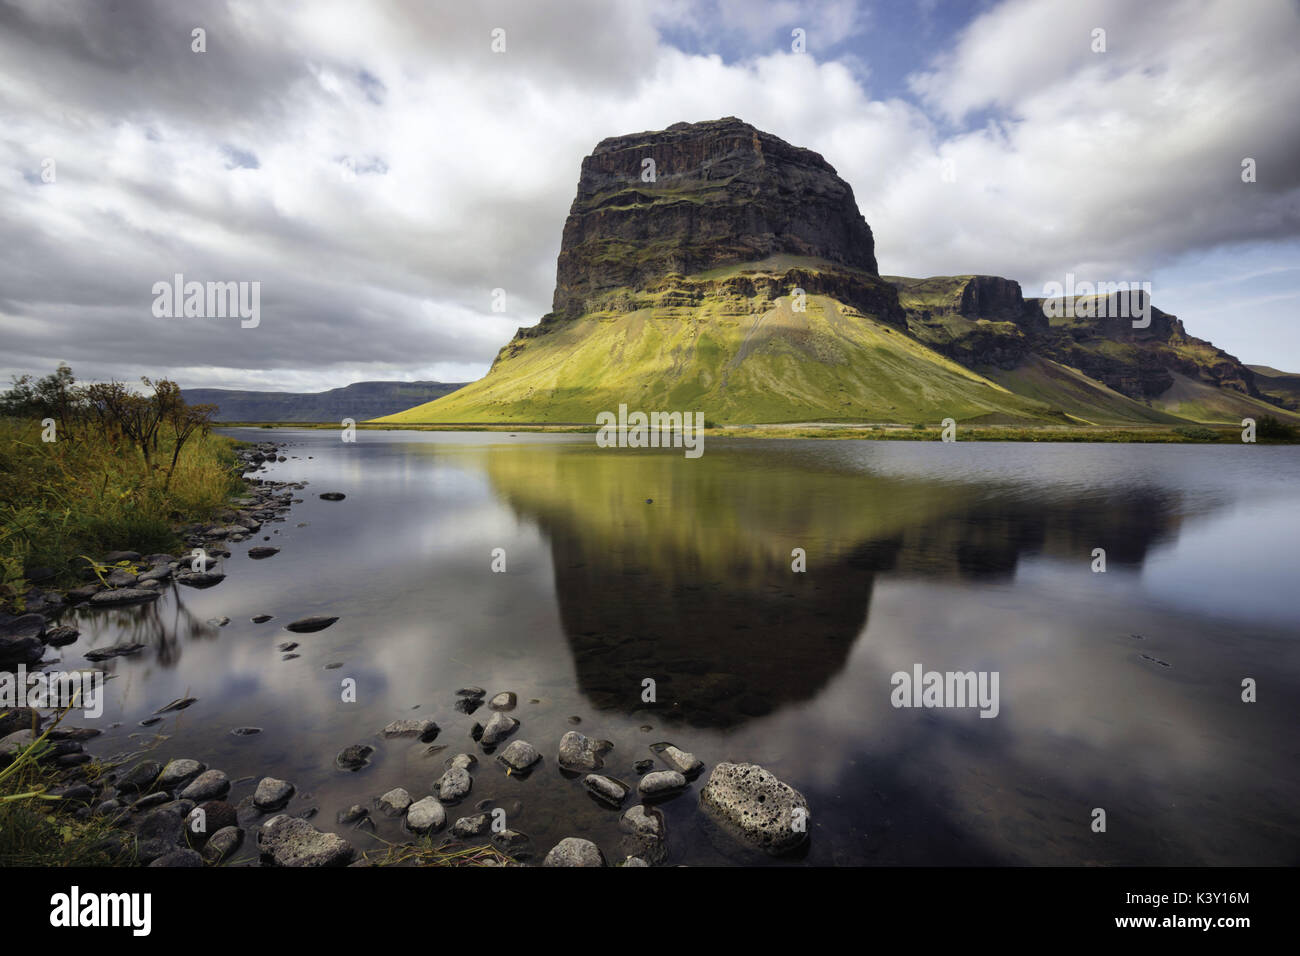 Mountain reflected in a lake in Iceland. - Stock Image